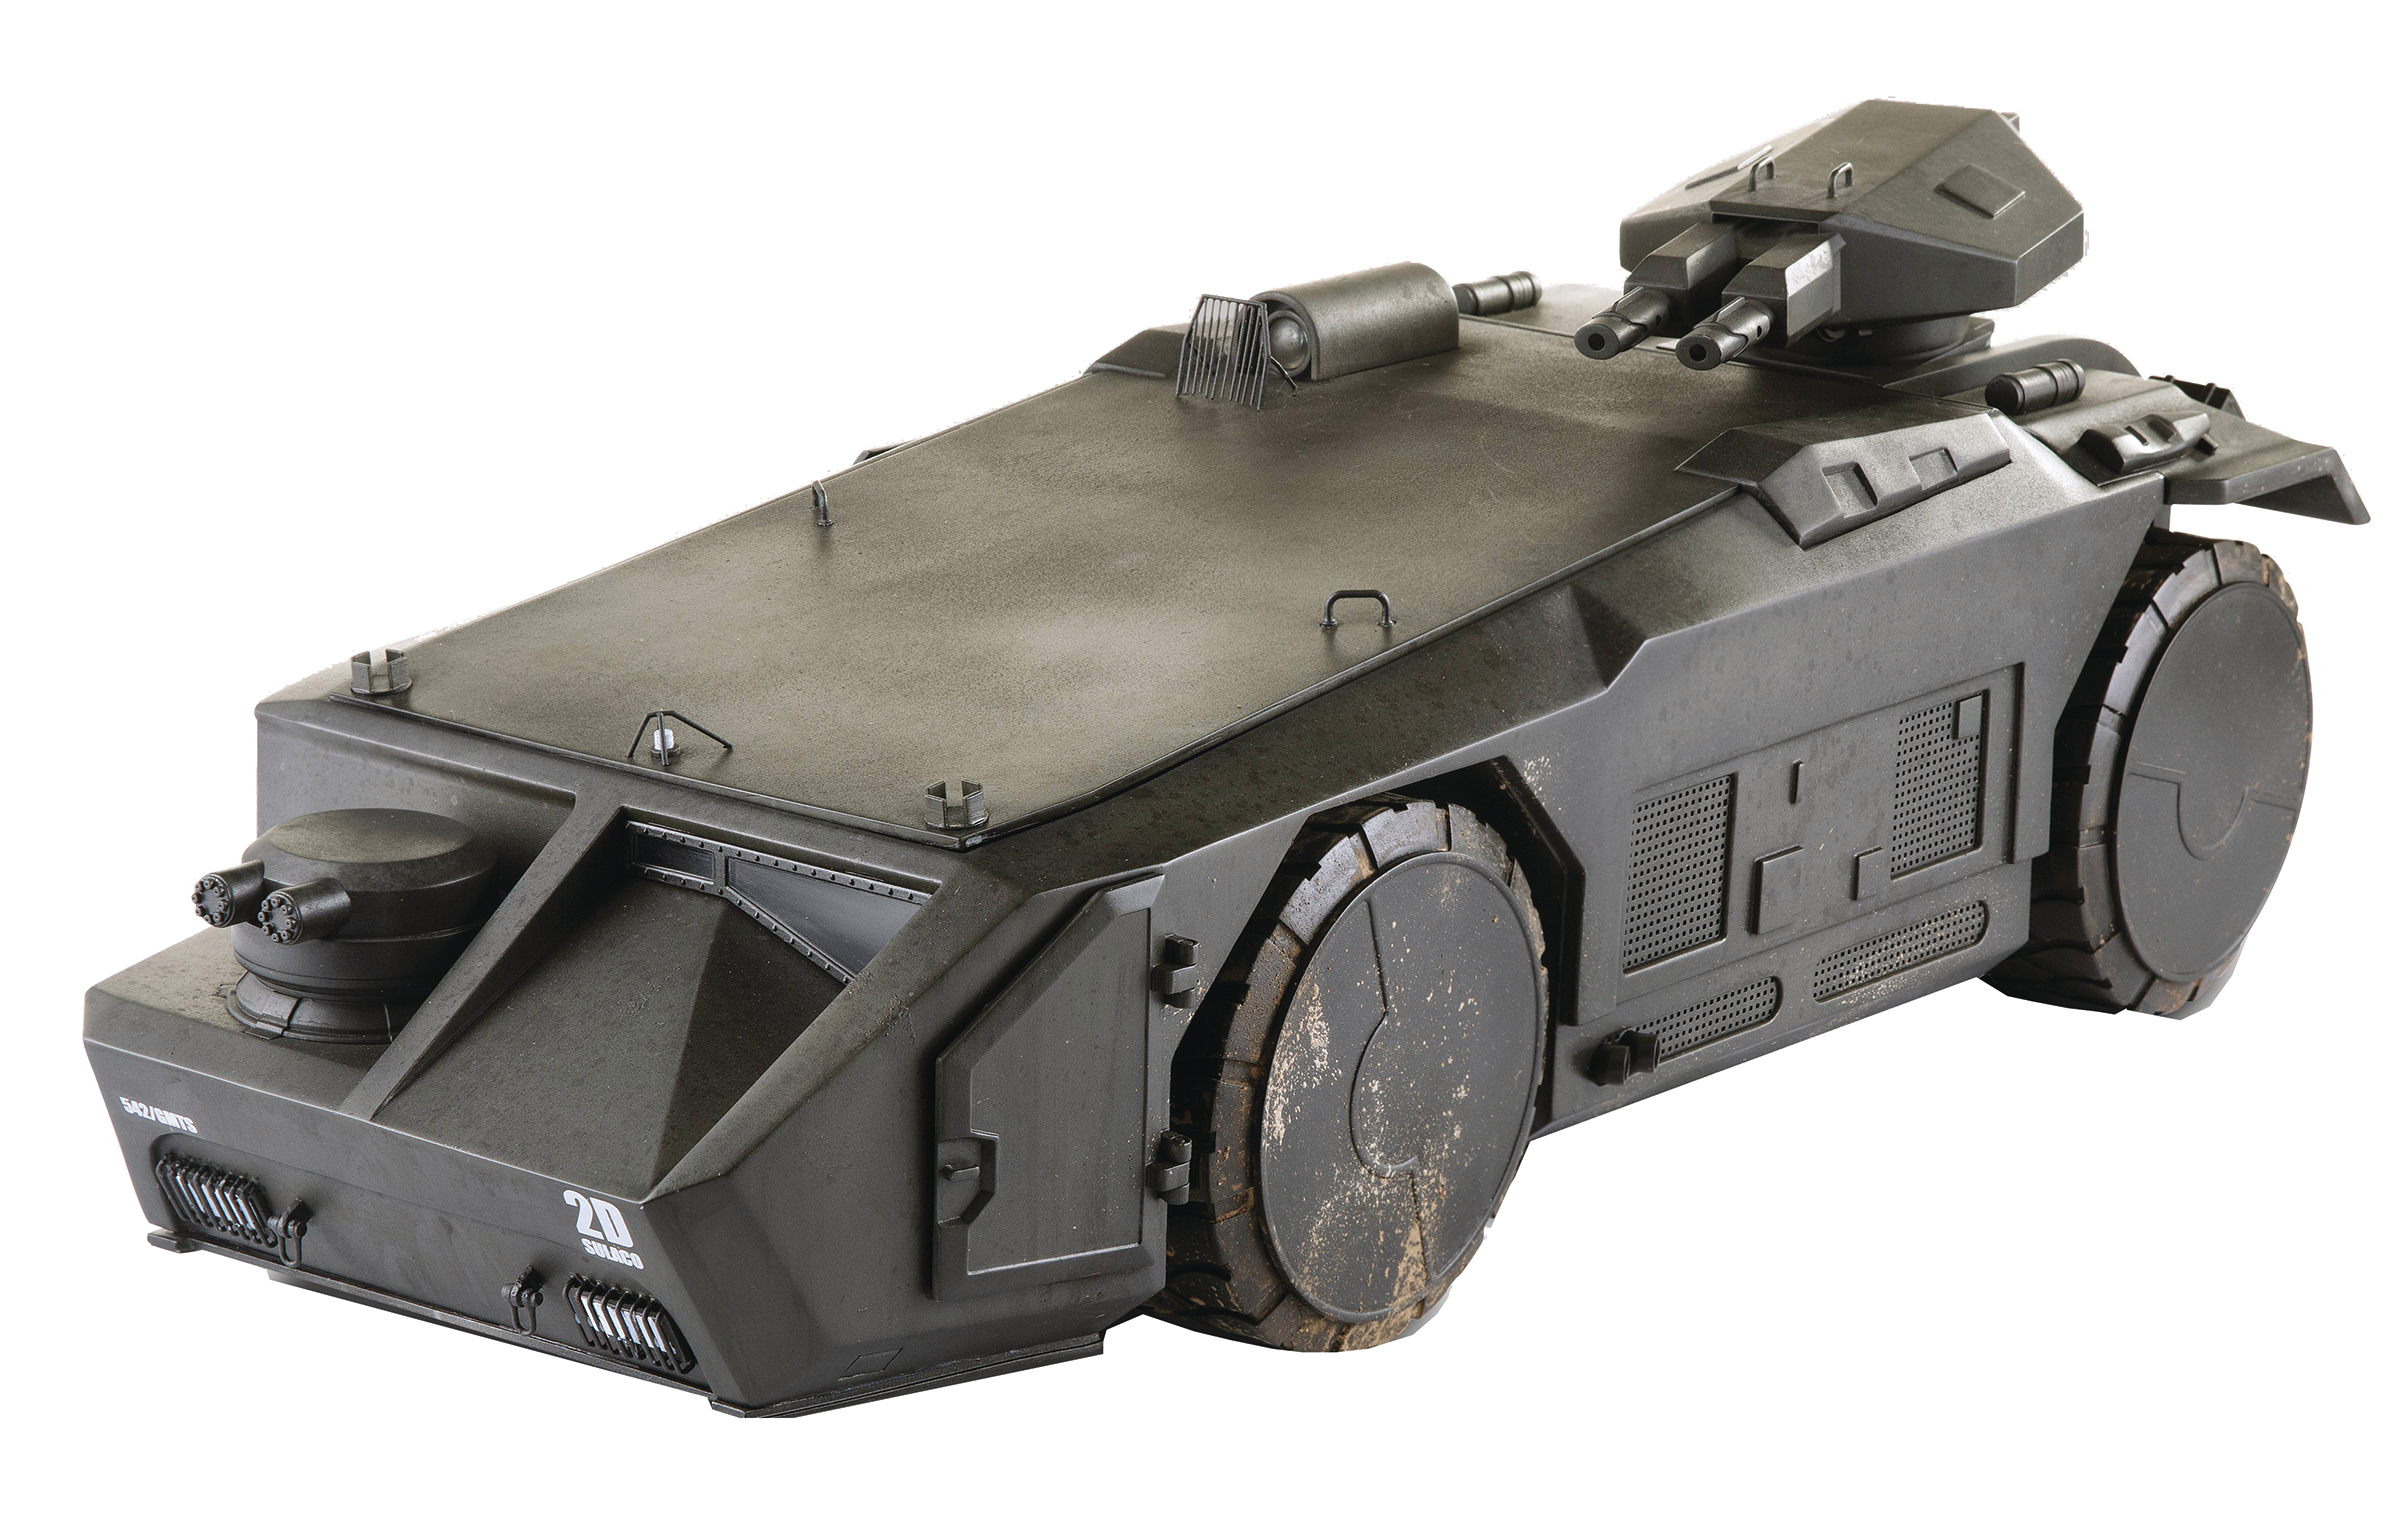 ALIENS CM ARMORED PERSONNEL CARRIER PX 1/18 SCALE VEH